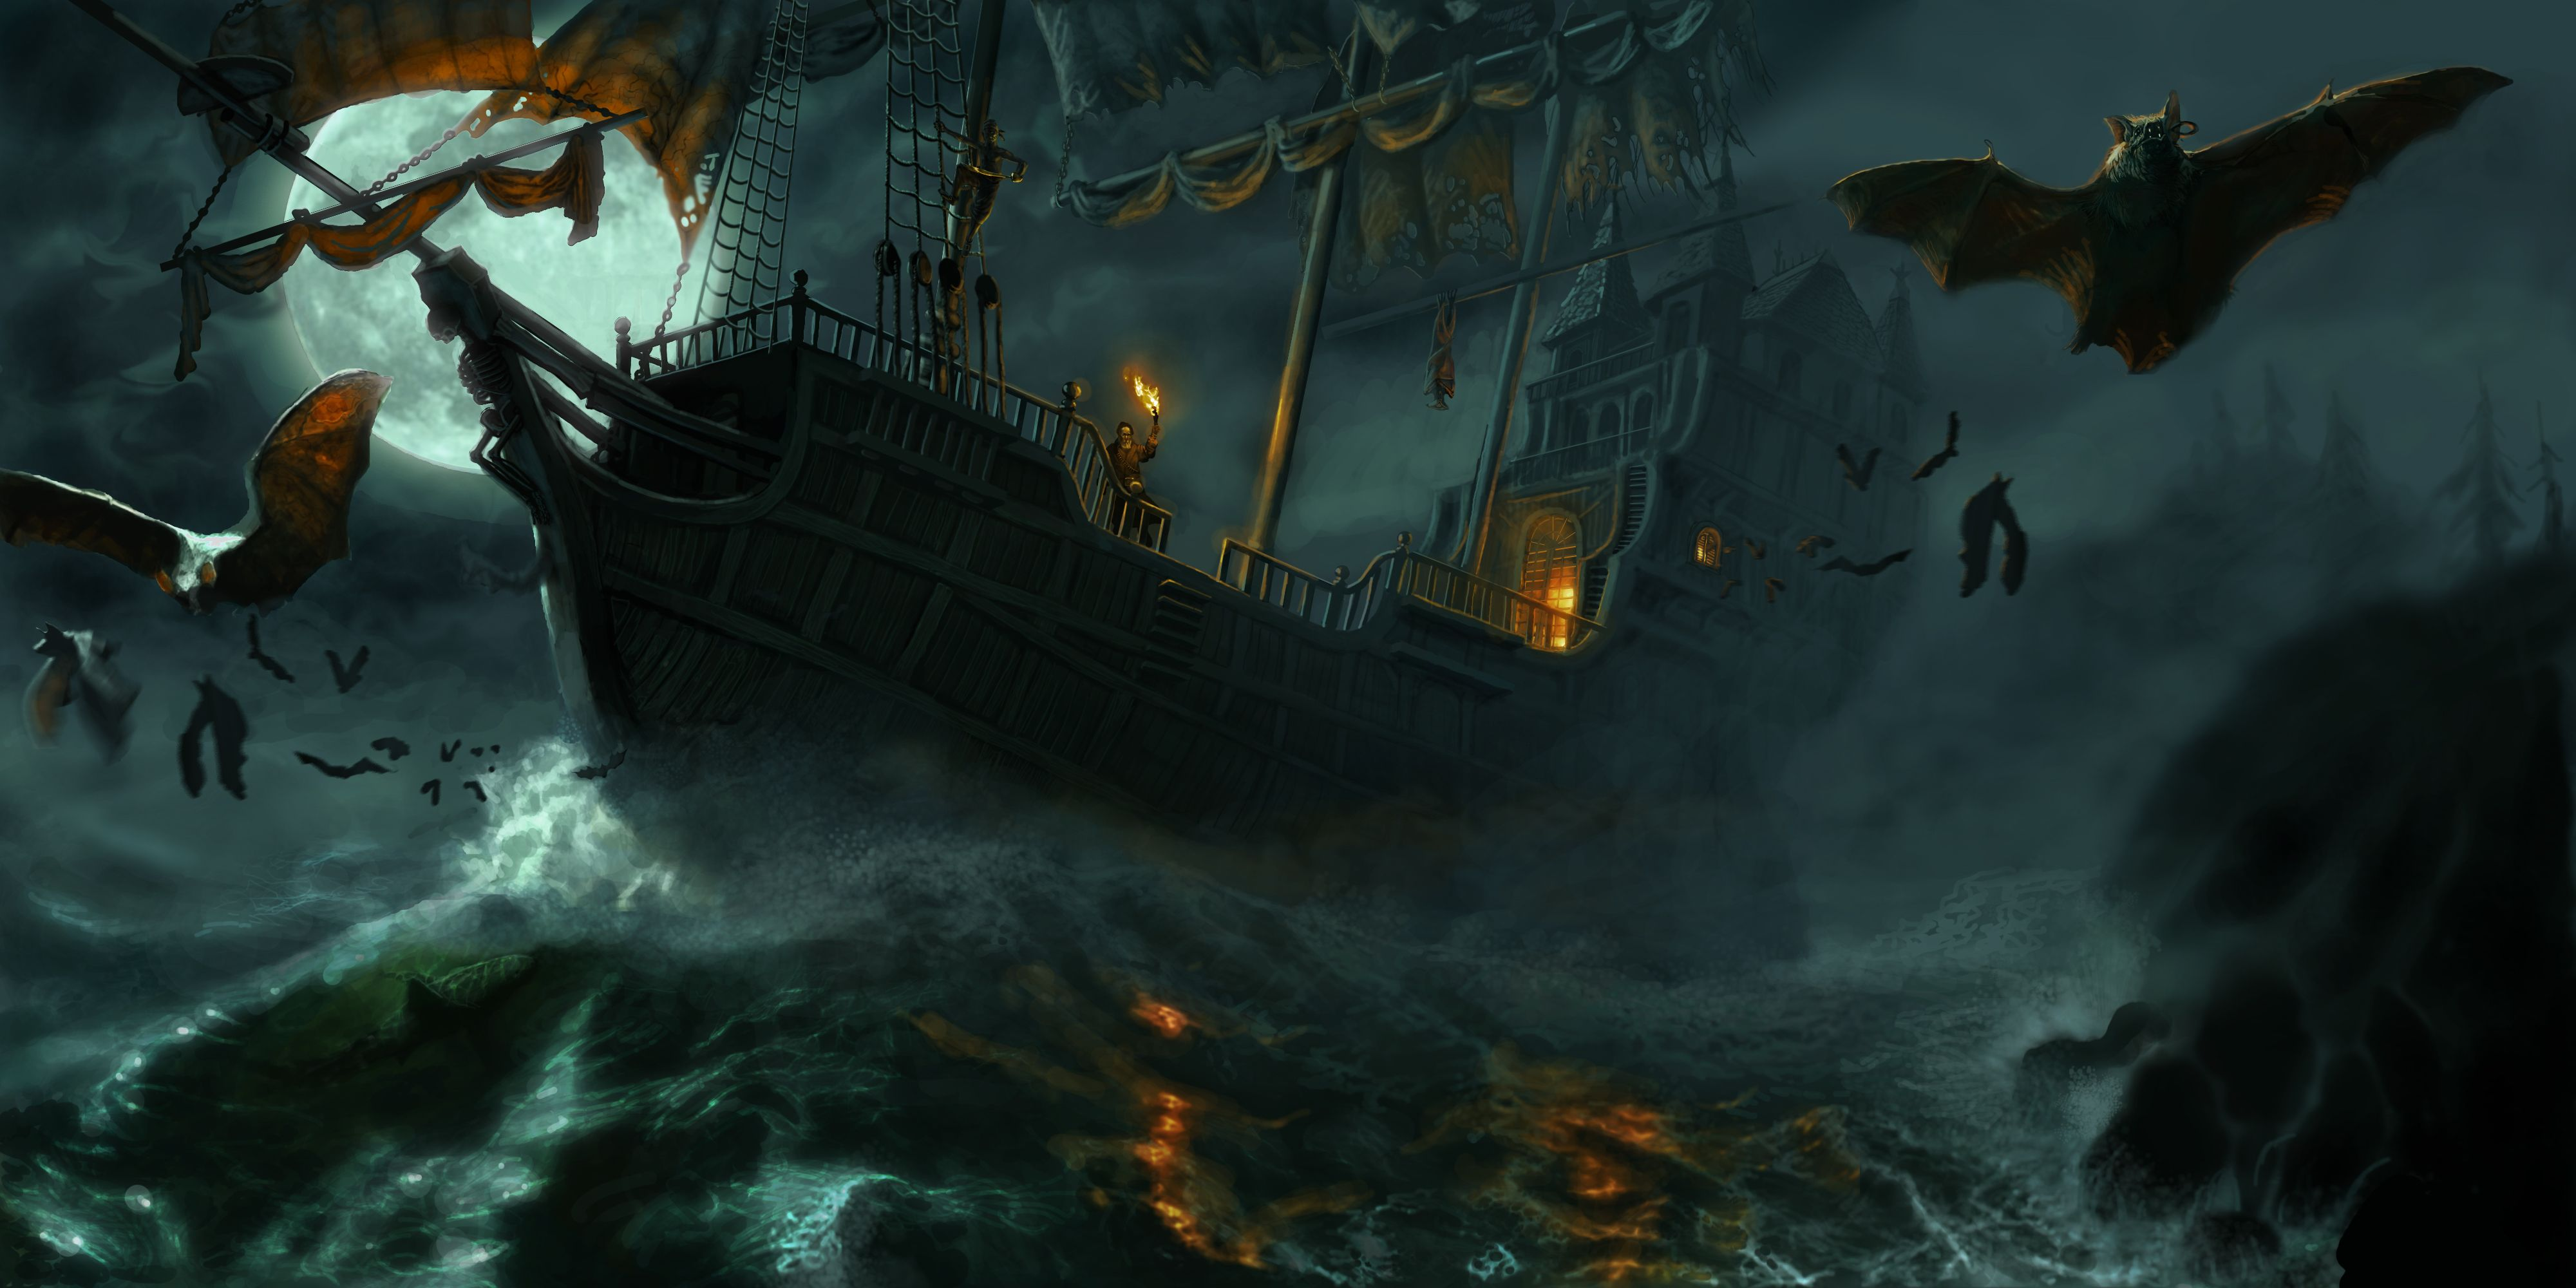 Vampirates Picture 2d illustration fantasy ship moon 4000x2000